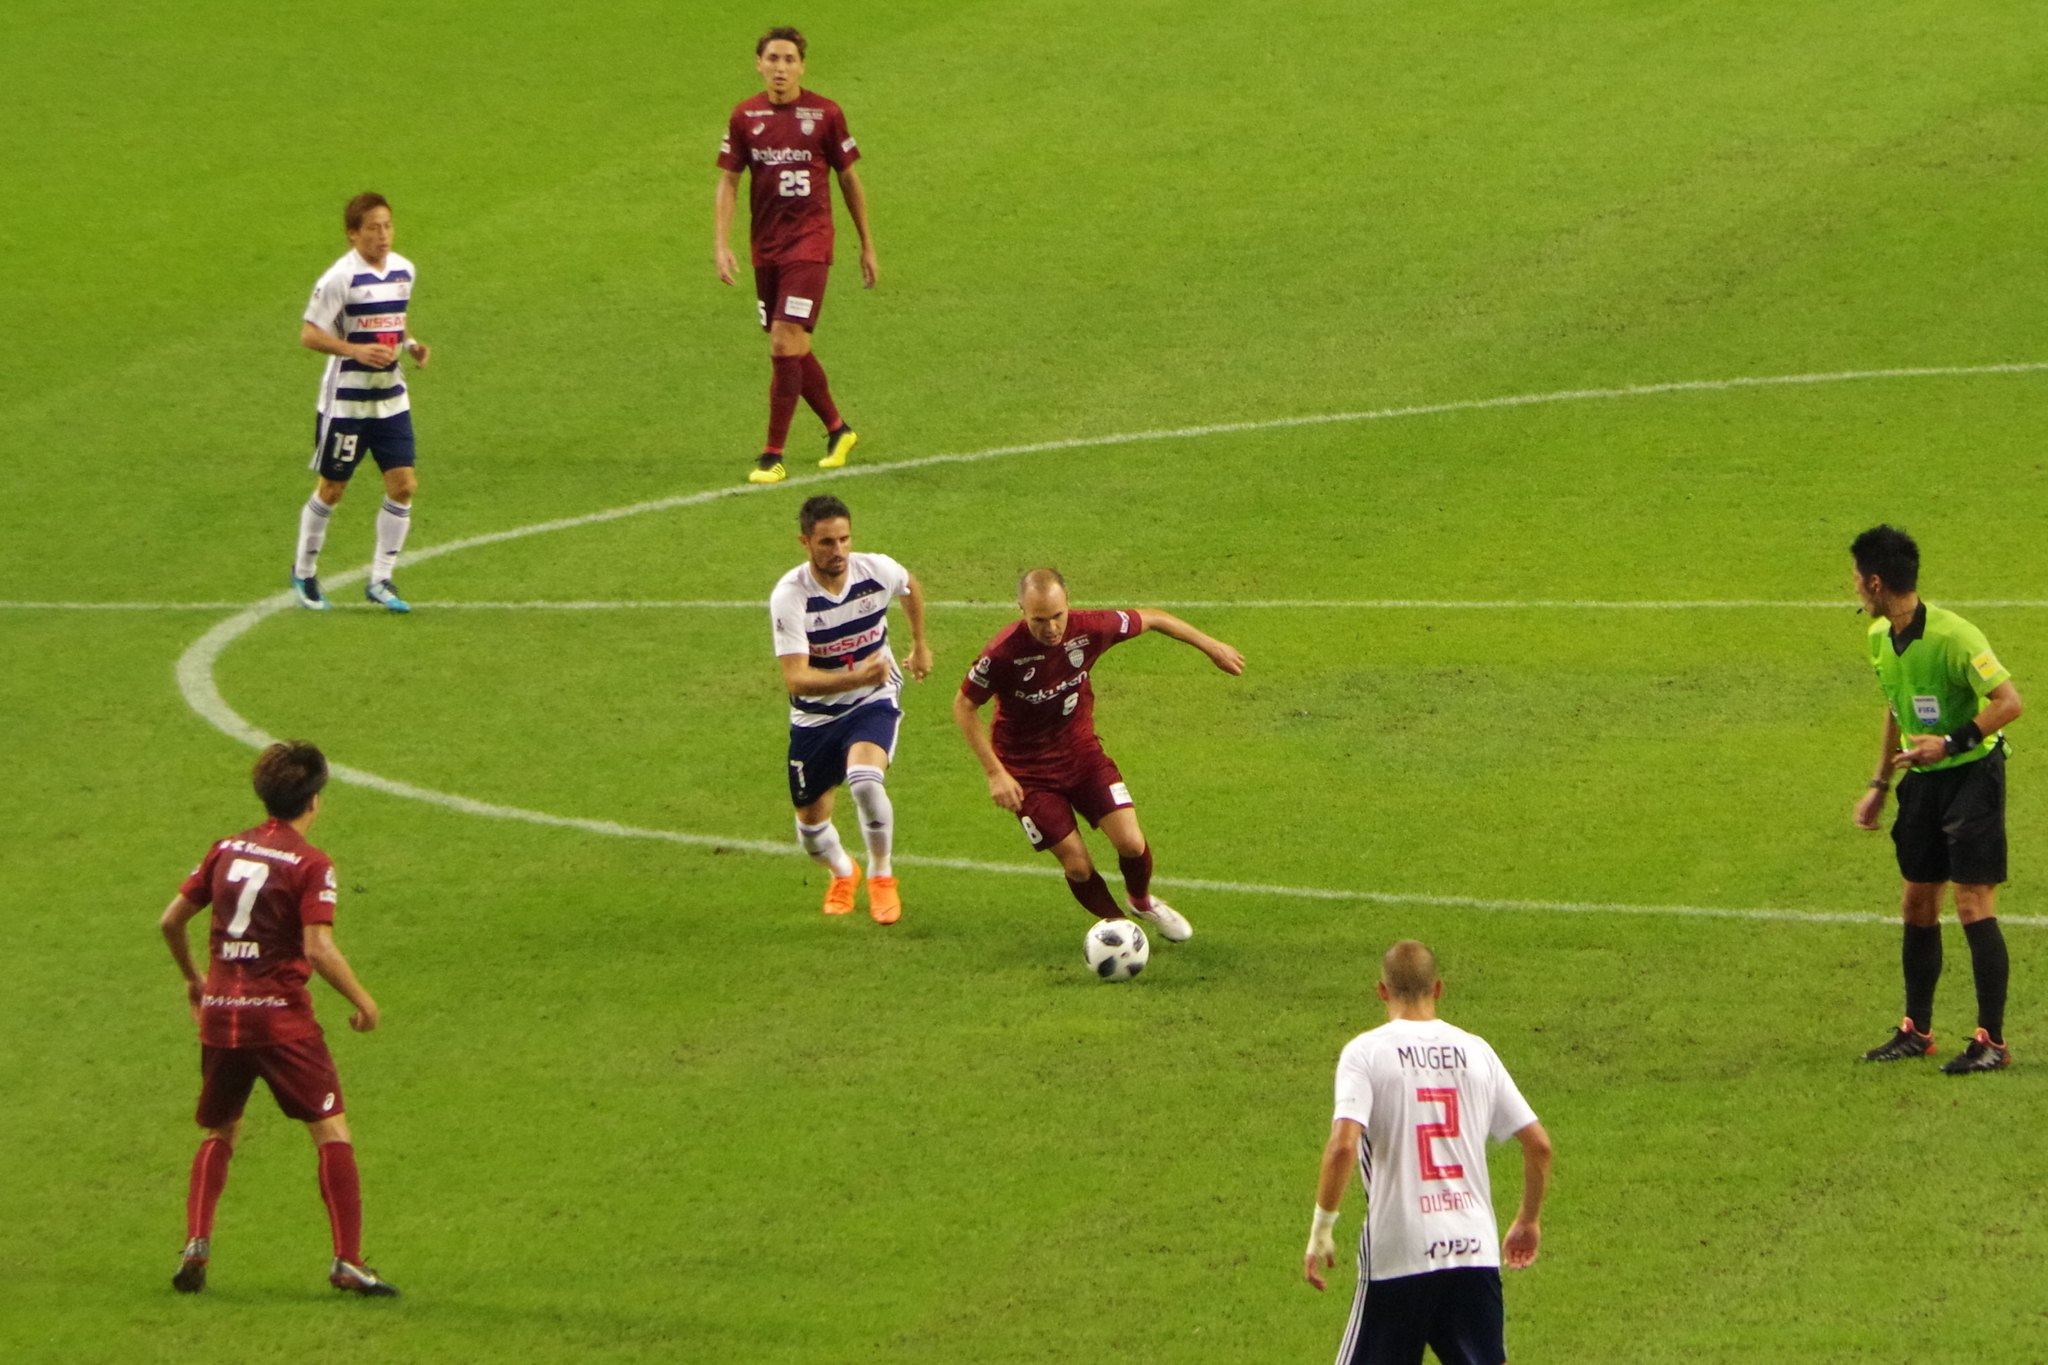 Iniesta's fierce attack